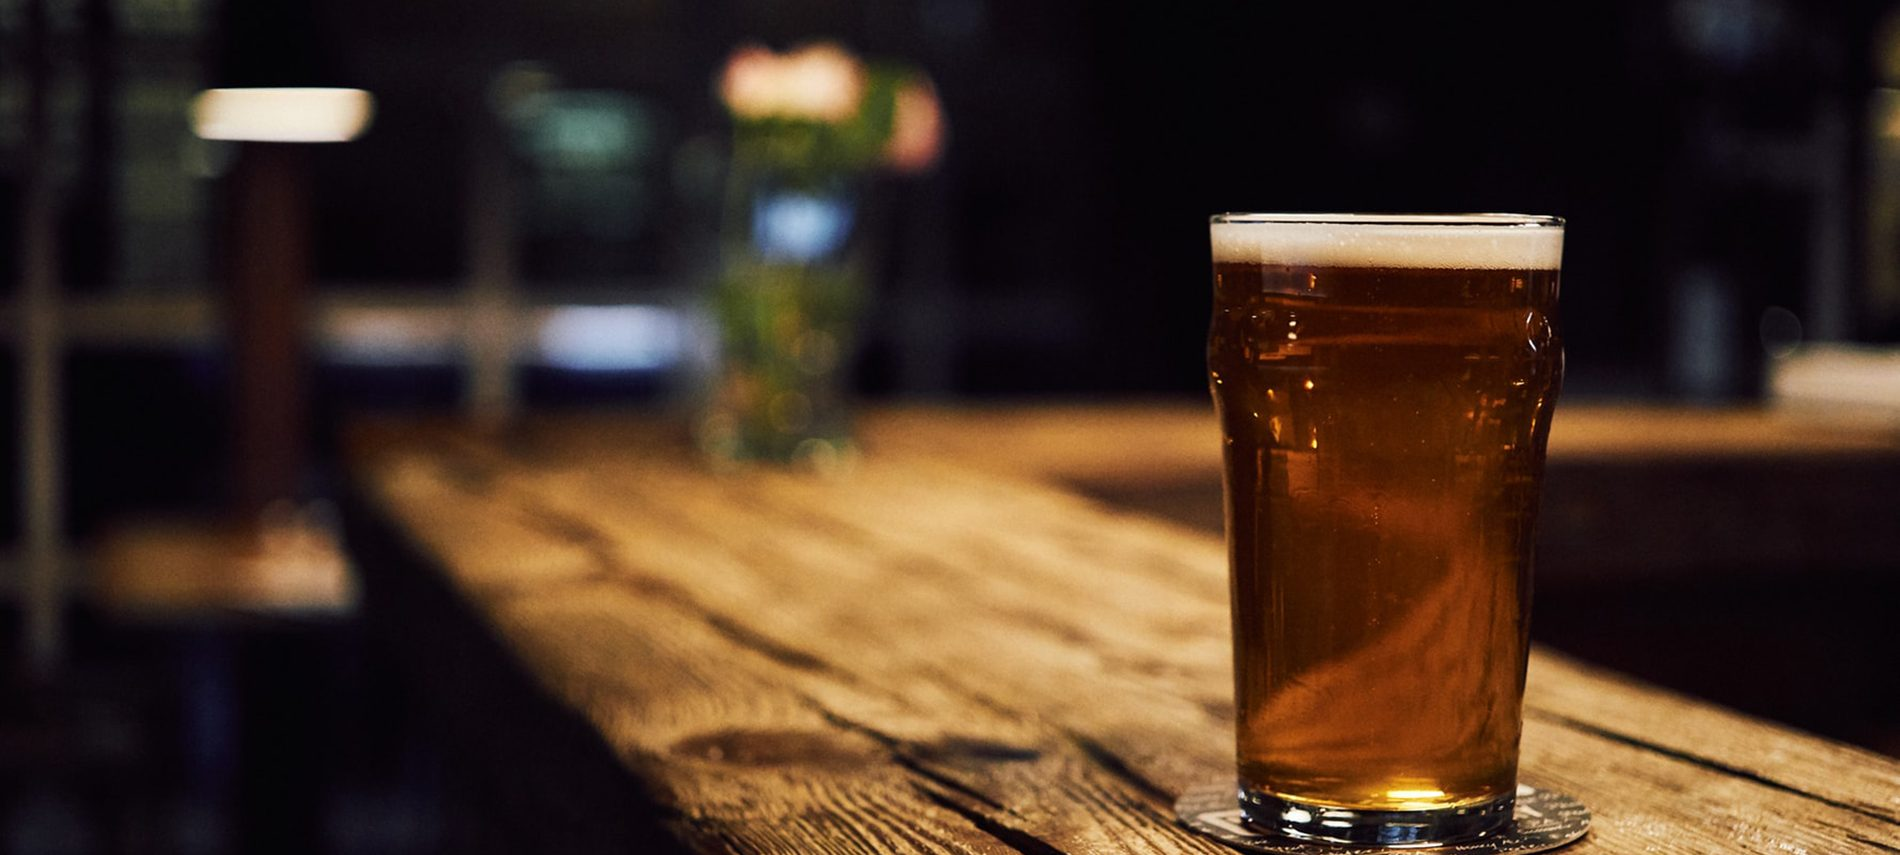 glass of golden beer with white head on long wooden bar